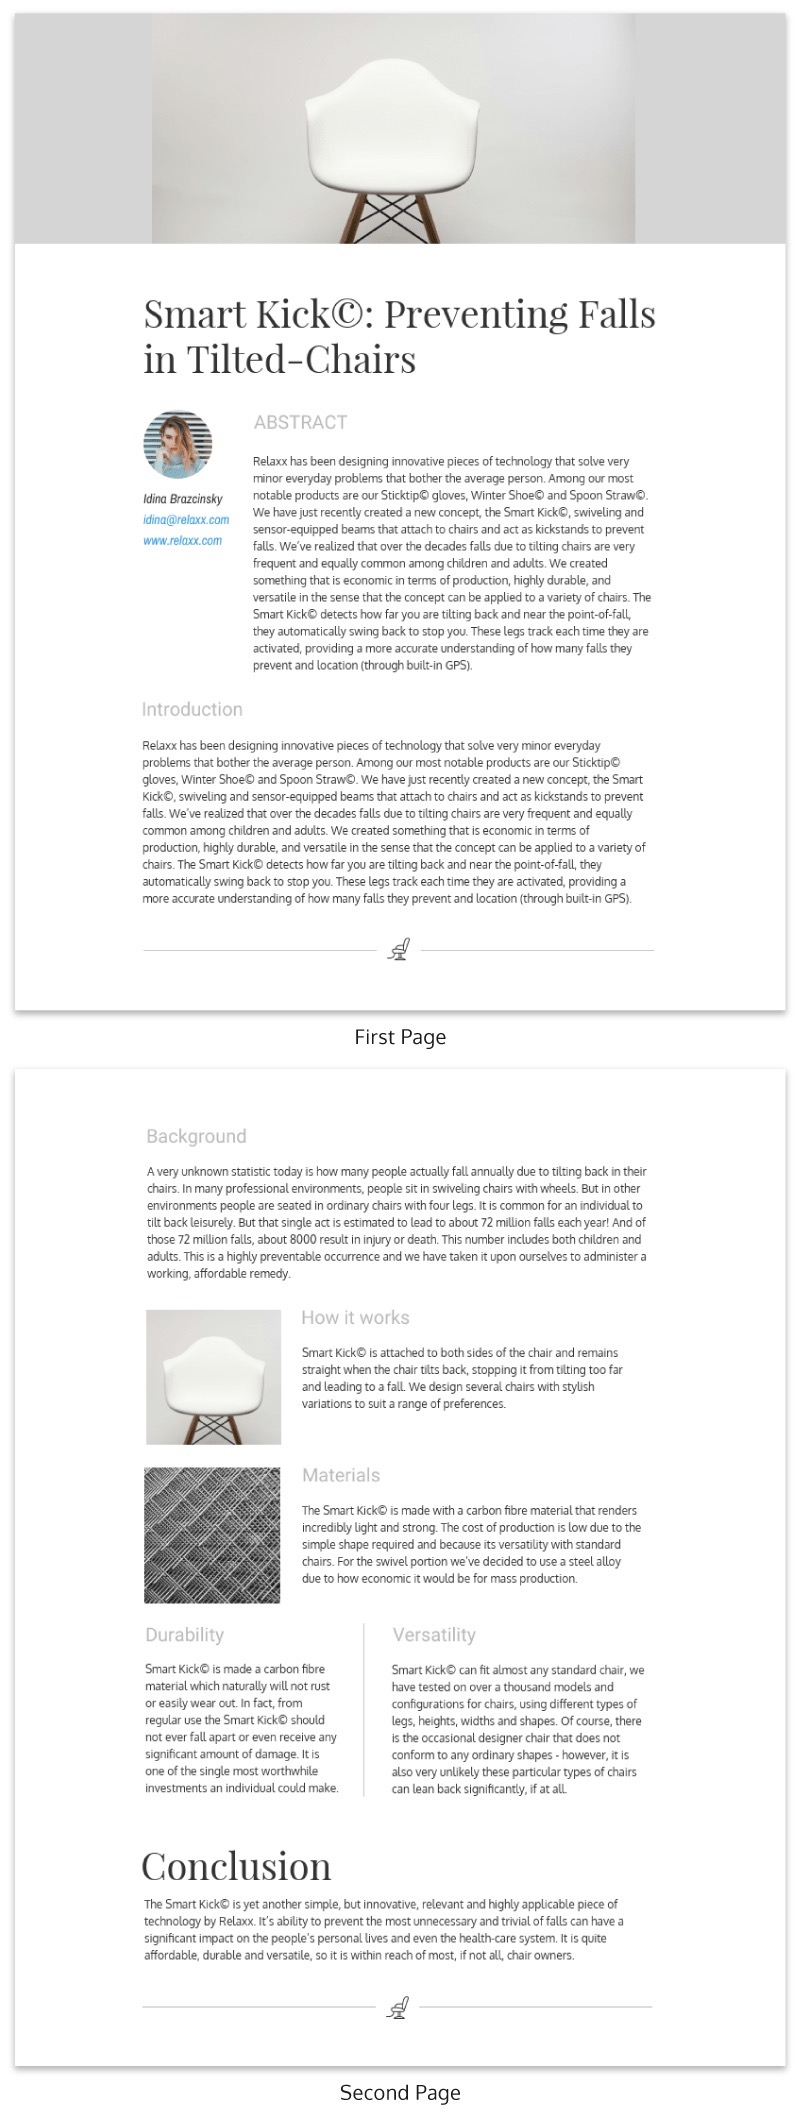 20+ Page-Turning White Paper Examples [Design Guide + White